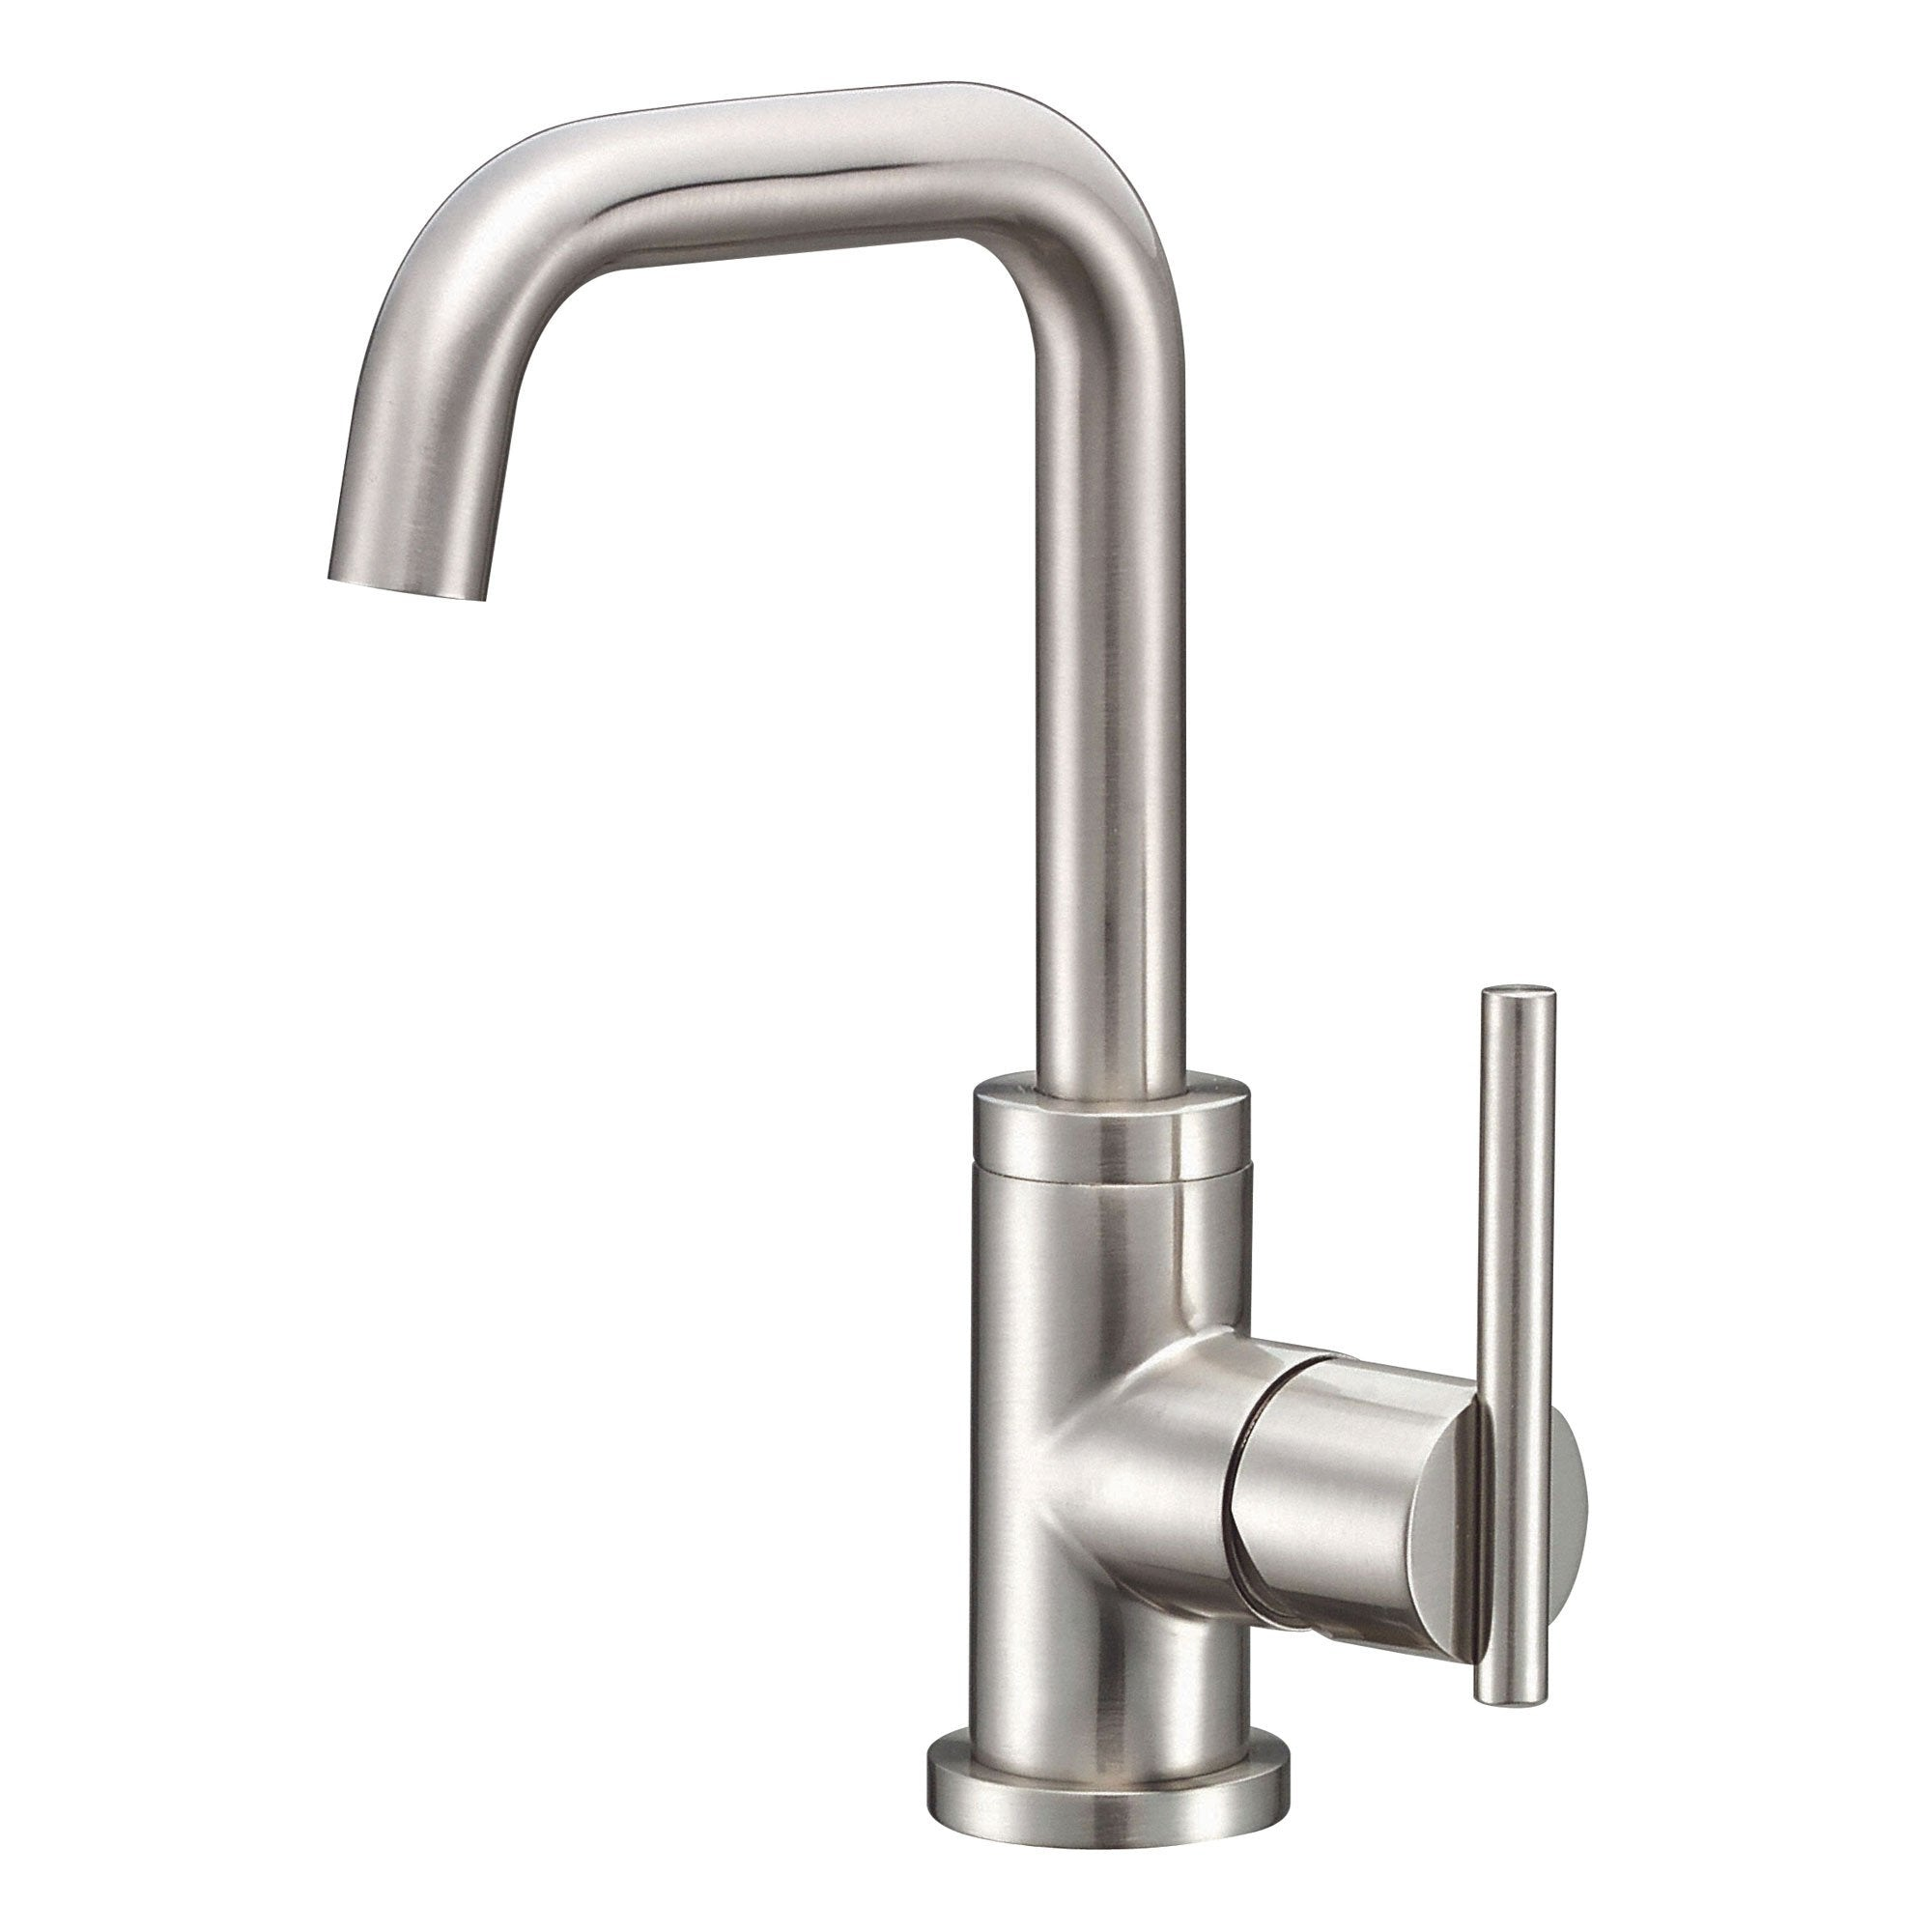 Danze Parma Brushed Nickel Single Hole 1 Handle Trimline Bathroom Faucet